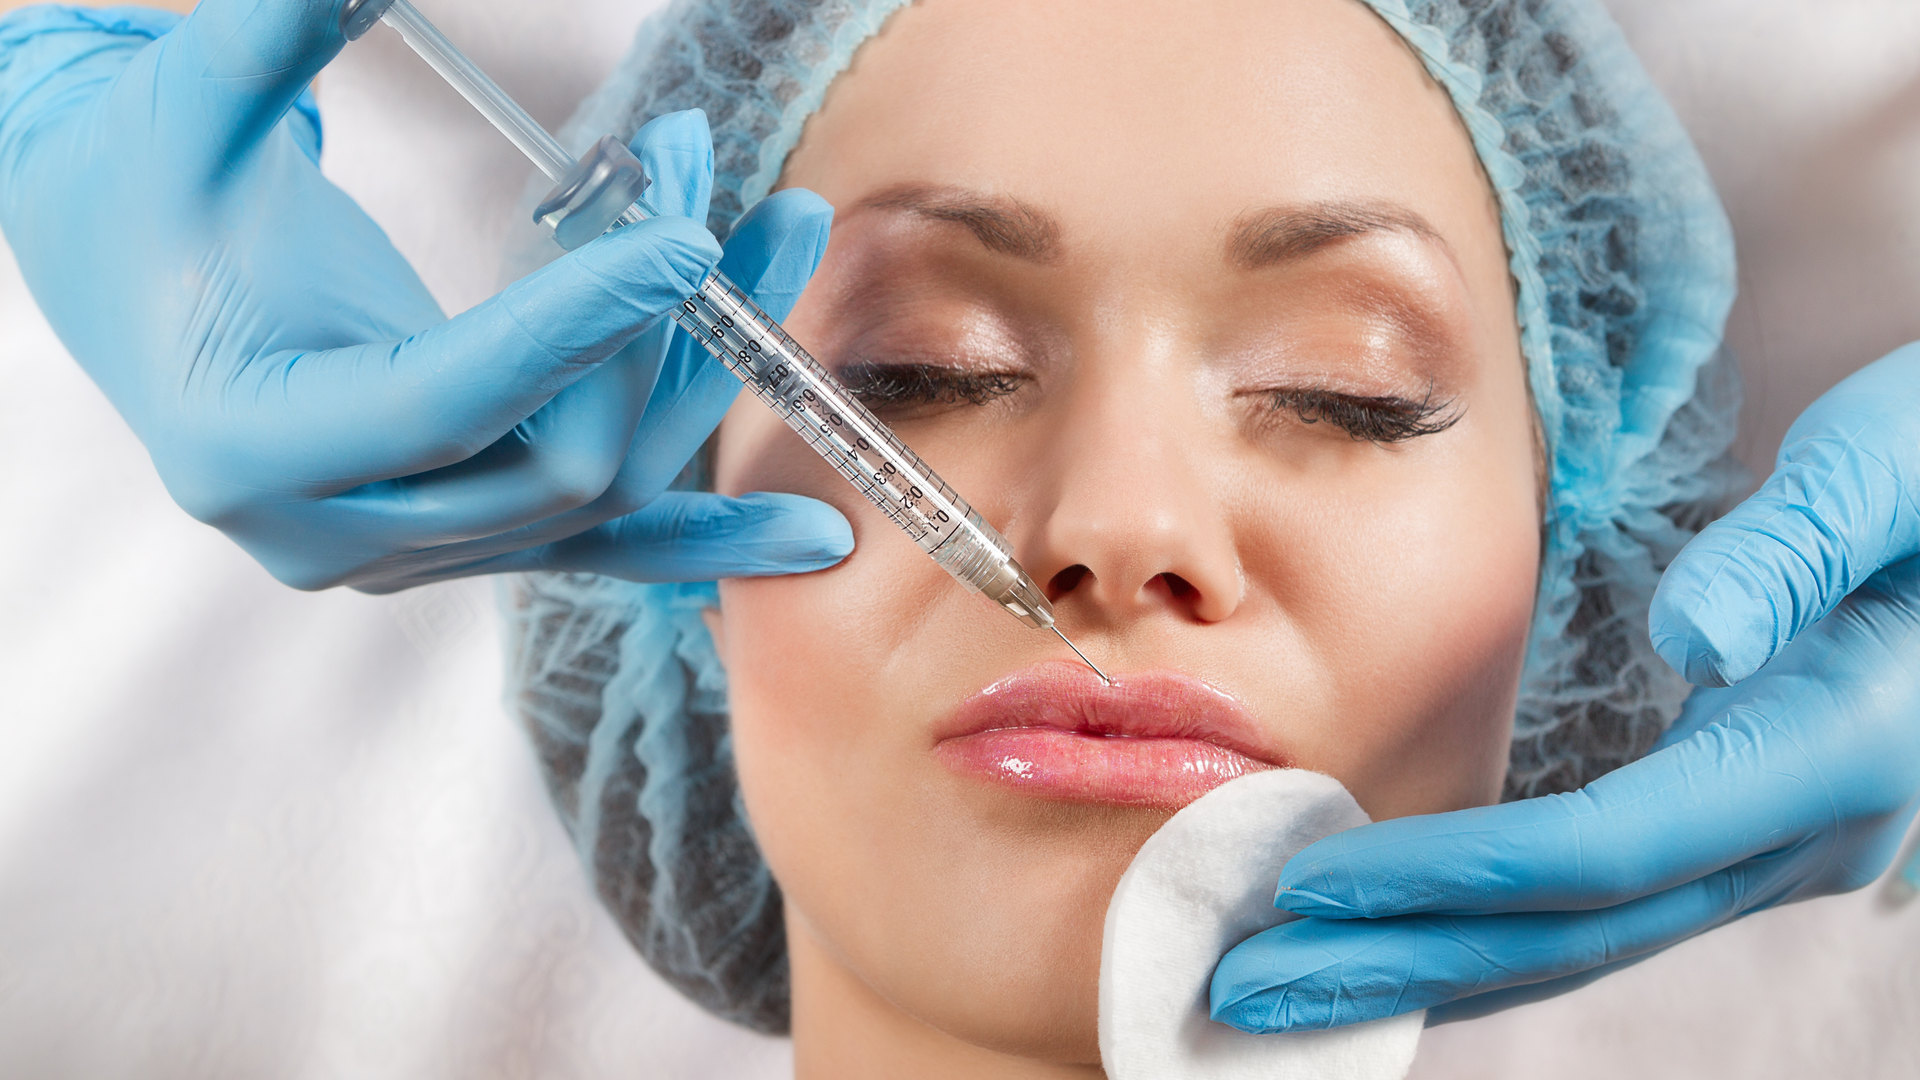 Young woman receiving a botox injection